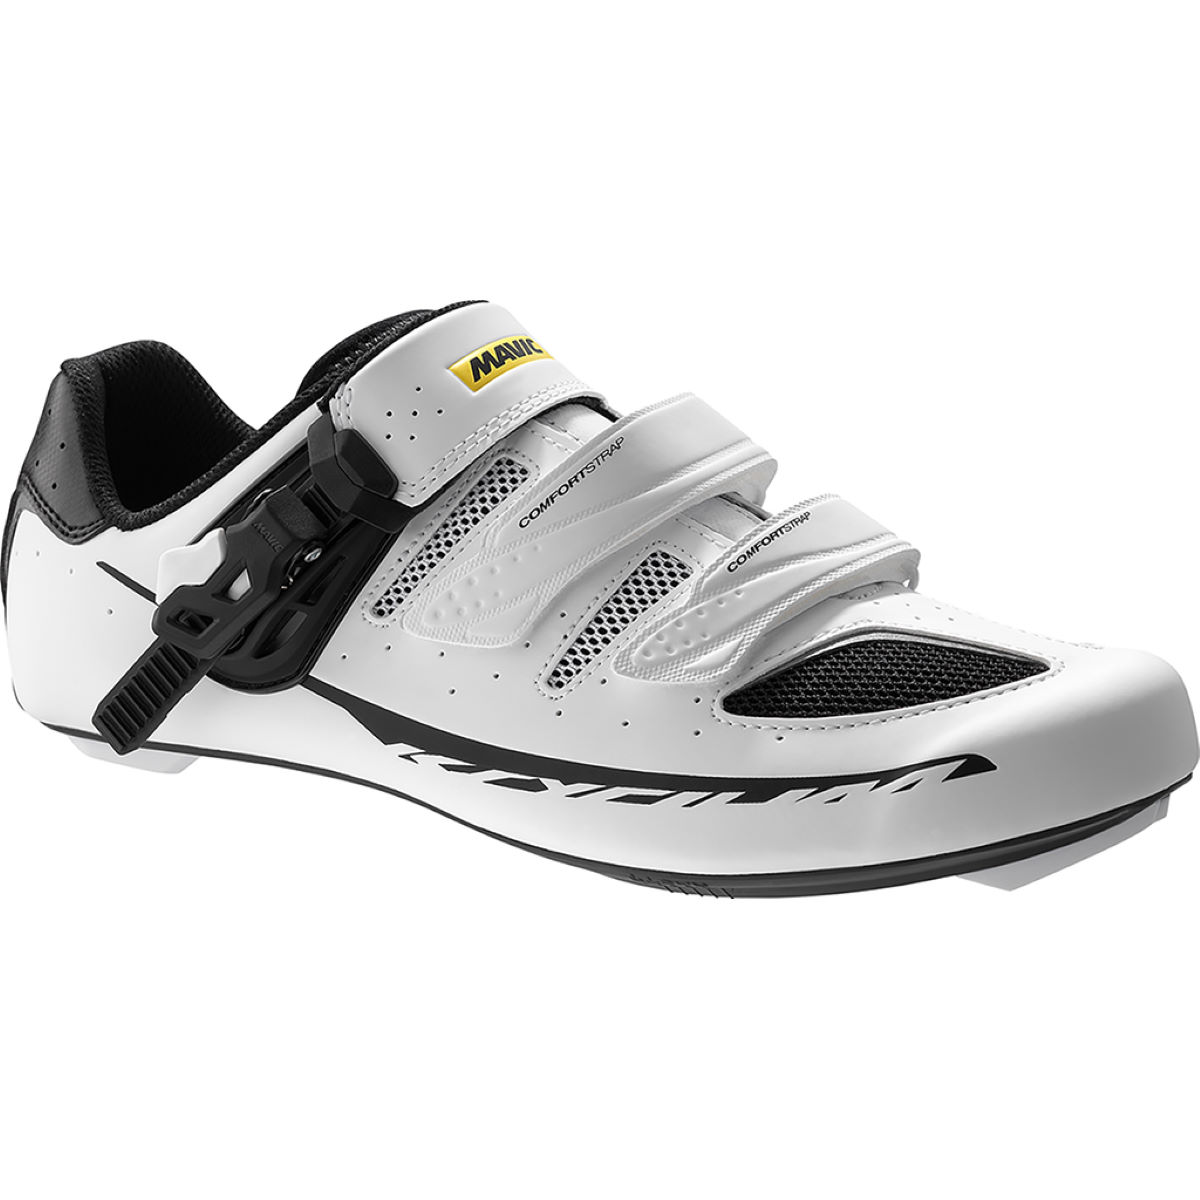 Chaussures Mavic Ksyrium Elite Maxi Fit II - 12 UK Blanc Chaussures de route